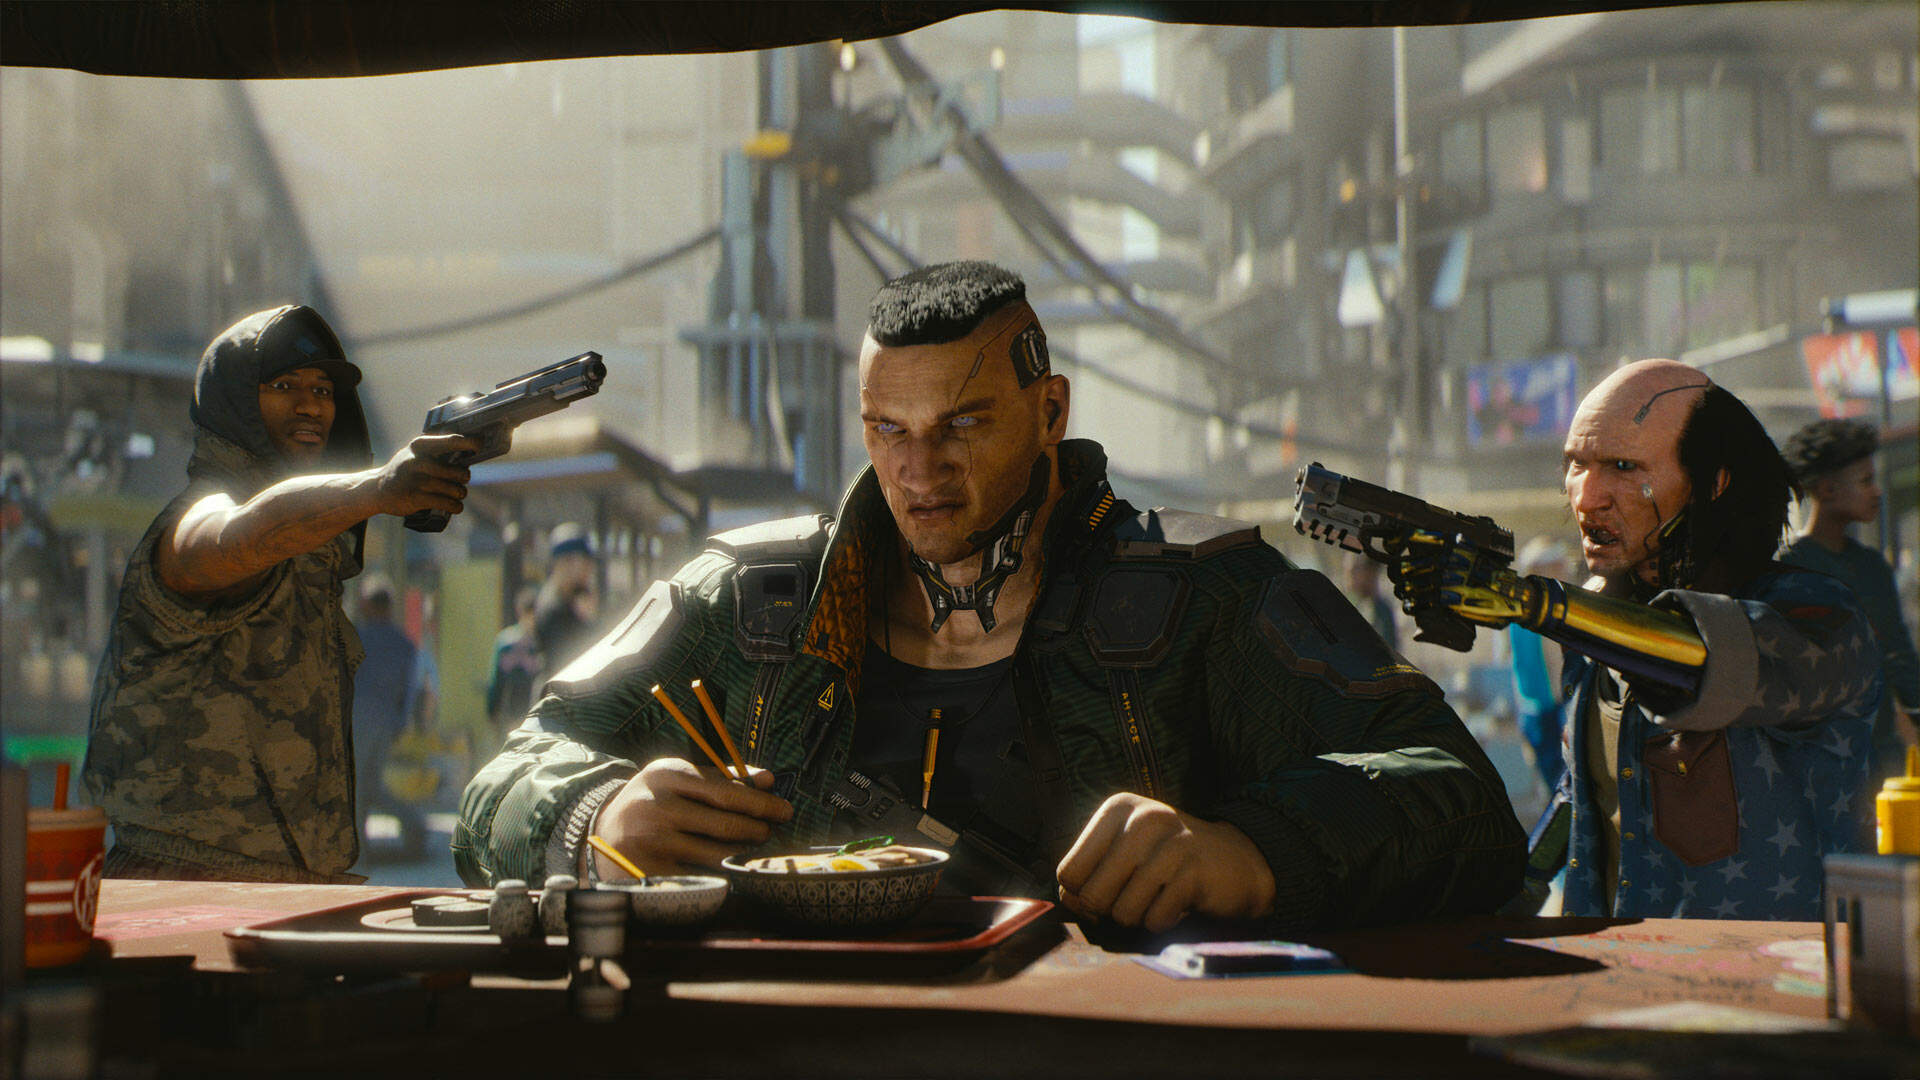 Crunchtime for Cyberpunk 2077